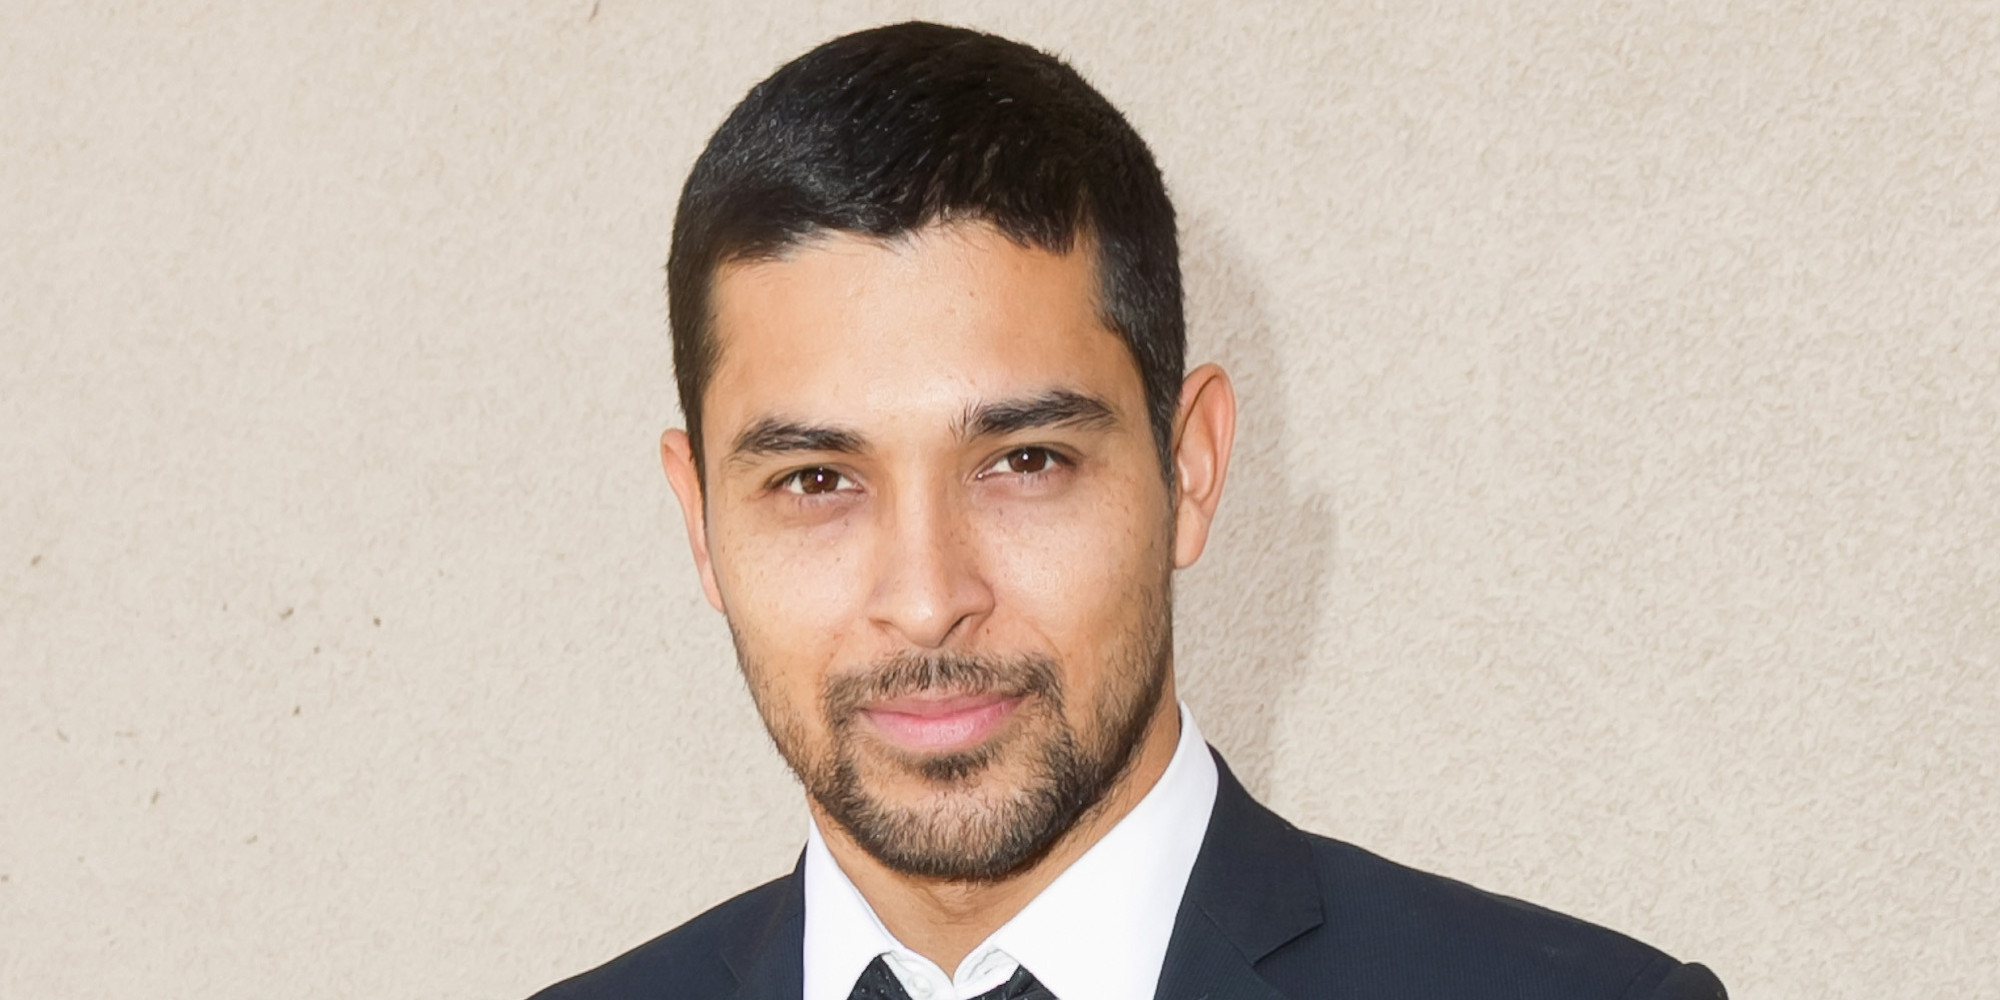 wilmer valderrama nciswilmer valderrama tumblr, wilmer valderrama wife, wilmer valderrama gif, wilmer valderrama ncis, wilmer valderrama ancestry, wilmer valderrama song, wilmer valderrama wiki, wilmer valderrama punk'd, wilmer valderrama bio, wilmer valderrama shirtless pictures, wilmer valderrama height, wilmer valderrama instagram, wilmer valderrama and demi lovato, wilmer valderrama grey's anatomy, wilmer valderrama house, wilmer valderrama net worth